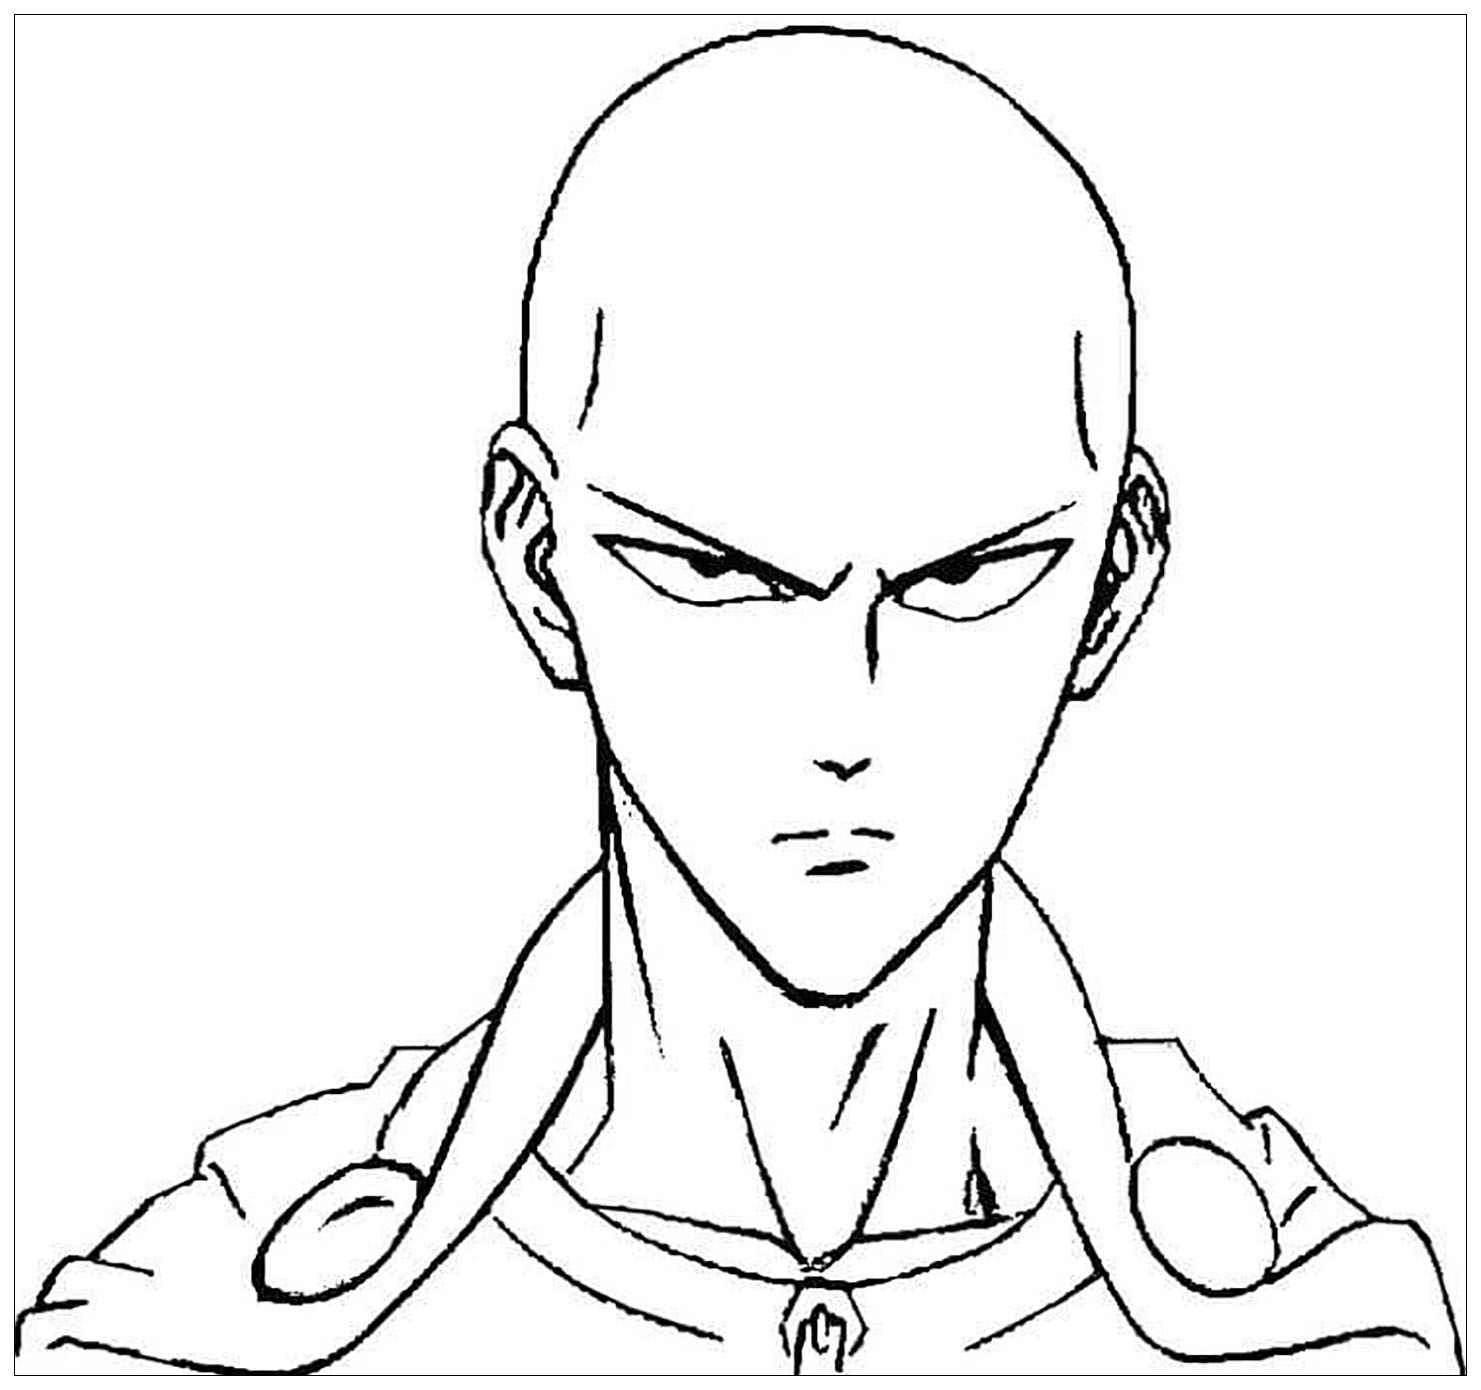 Simple One Punch Man coloring page